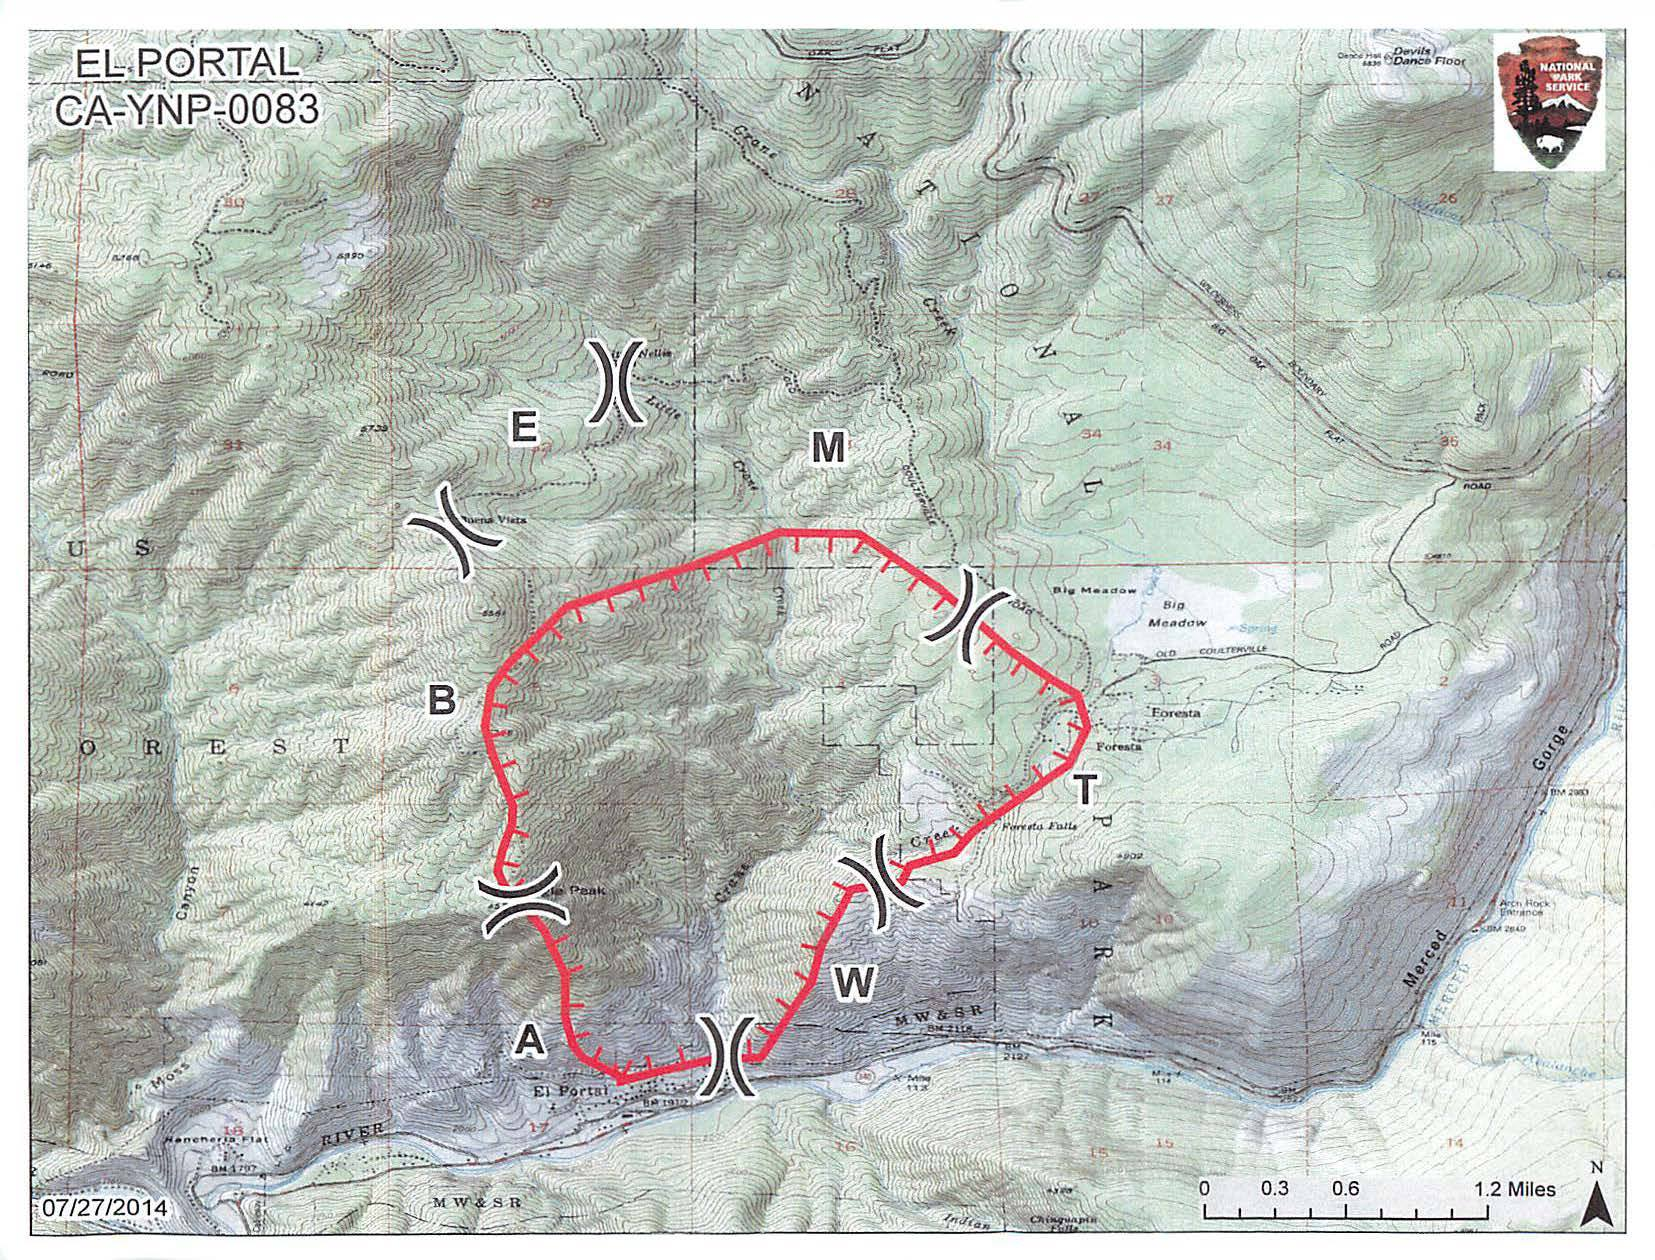 map showing fire perimeter in El Portal and Foresta areas